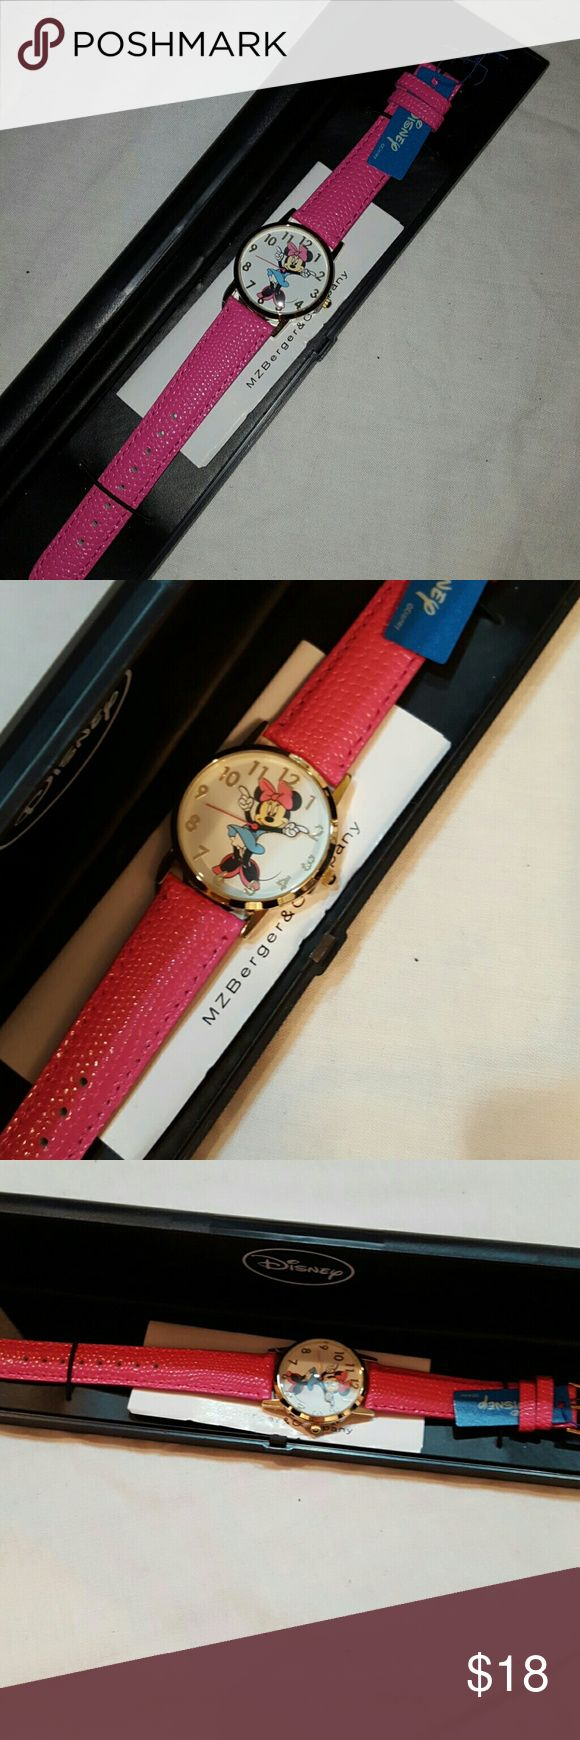 NEW Minnie Mouse watch Disney Watch Brand new in casw. Leather strap may need battery. Comes with instructions and warranty Disney Accessories Watches